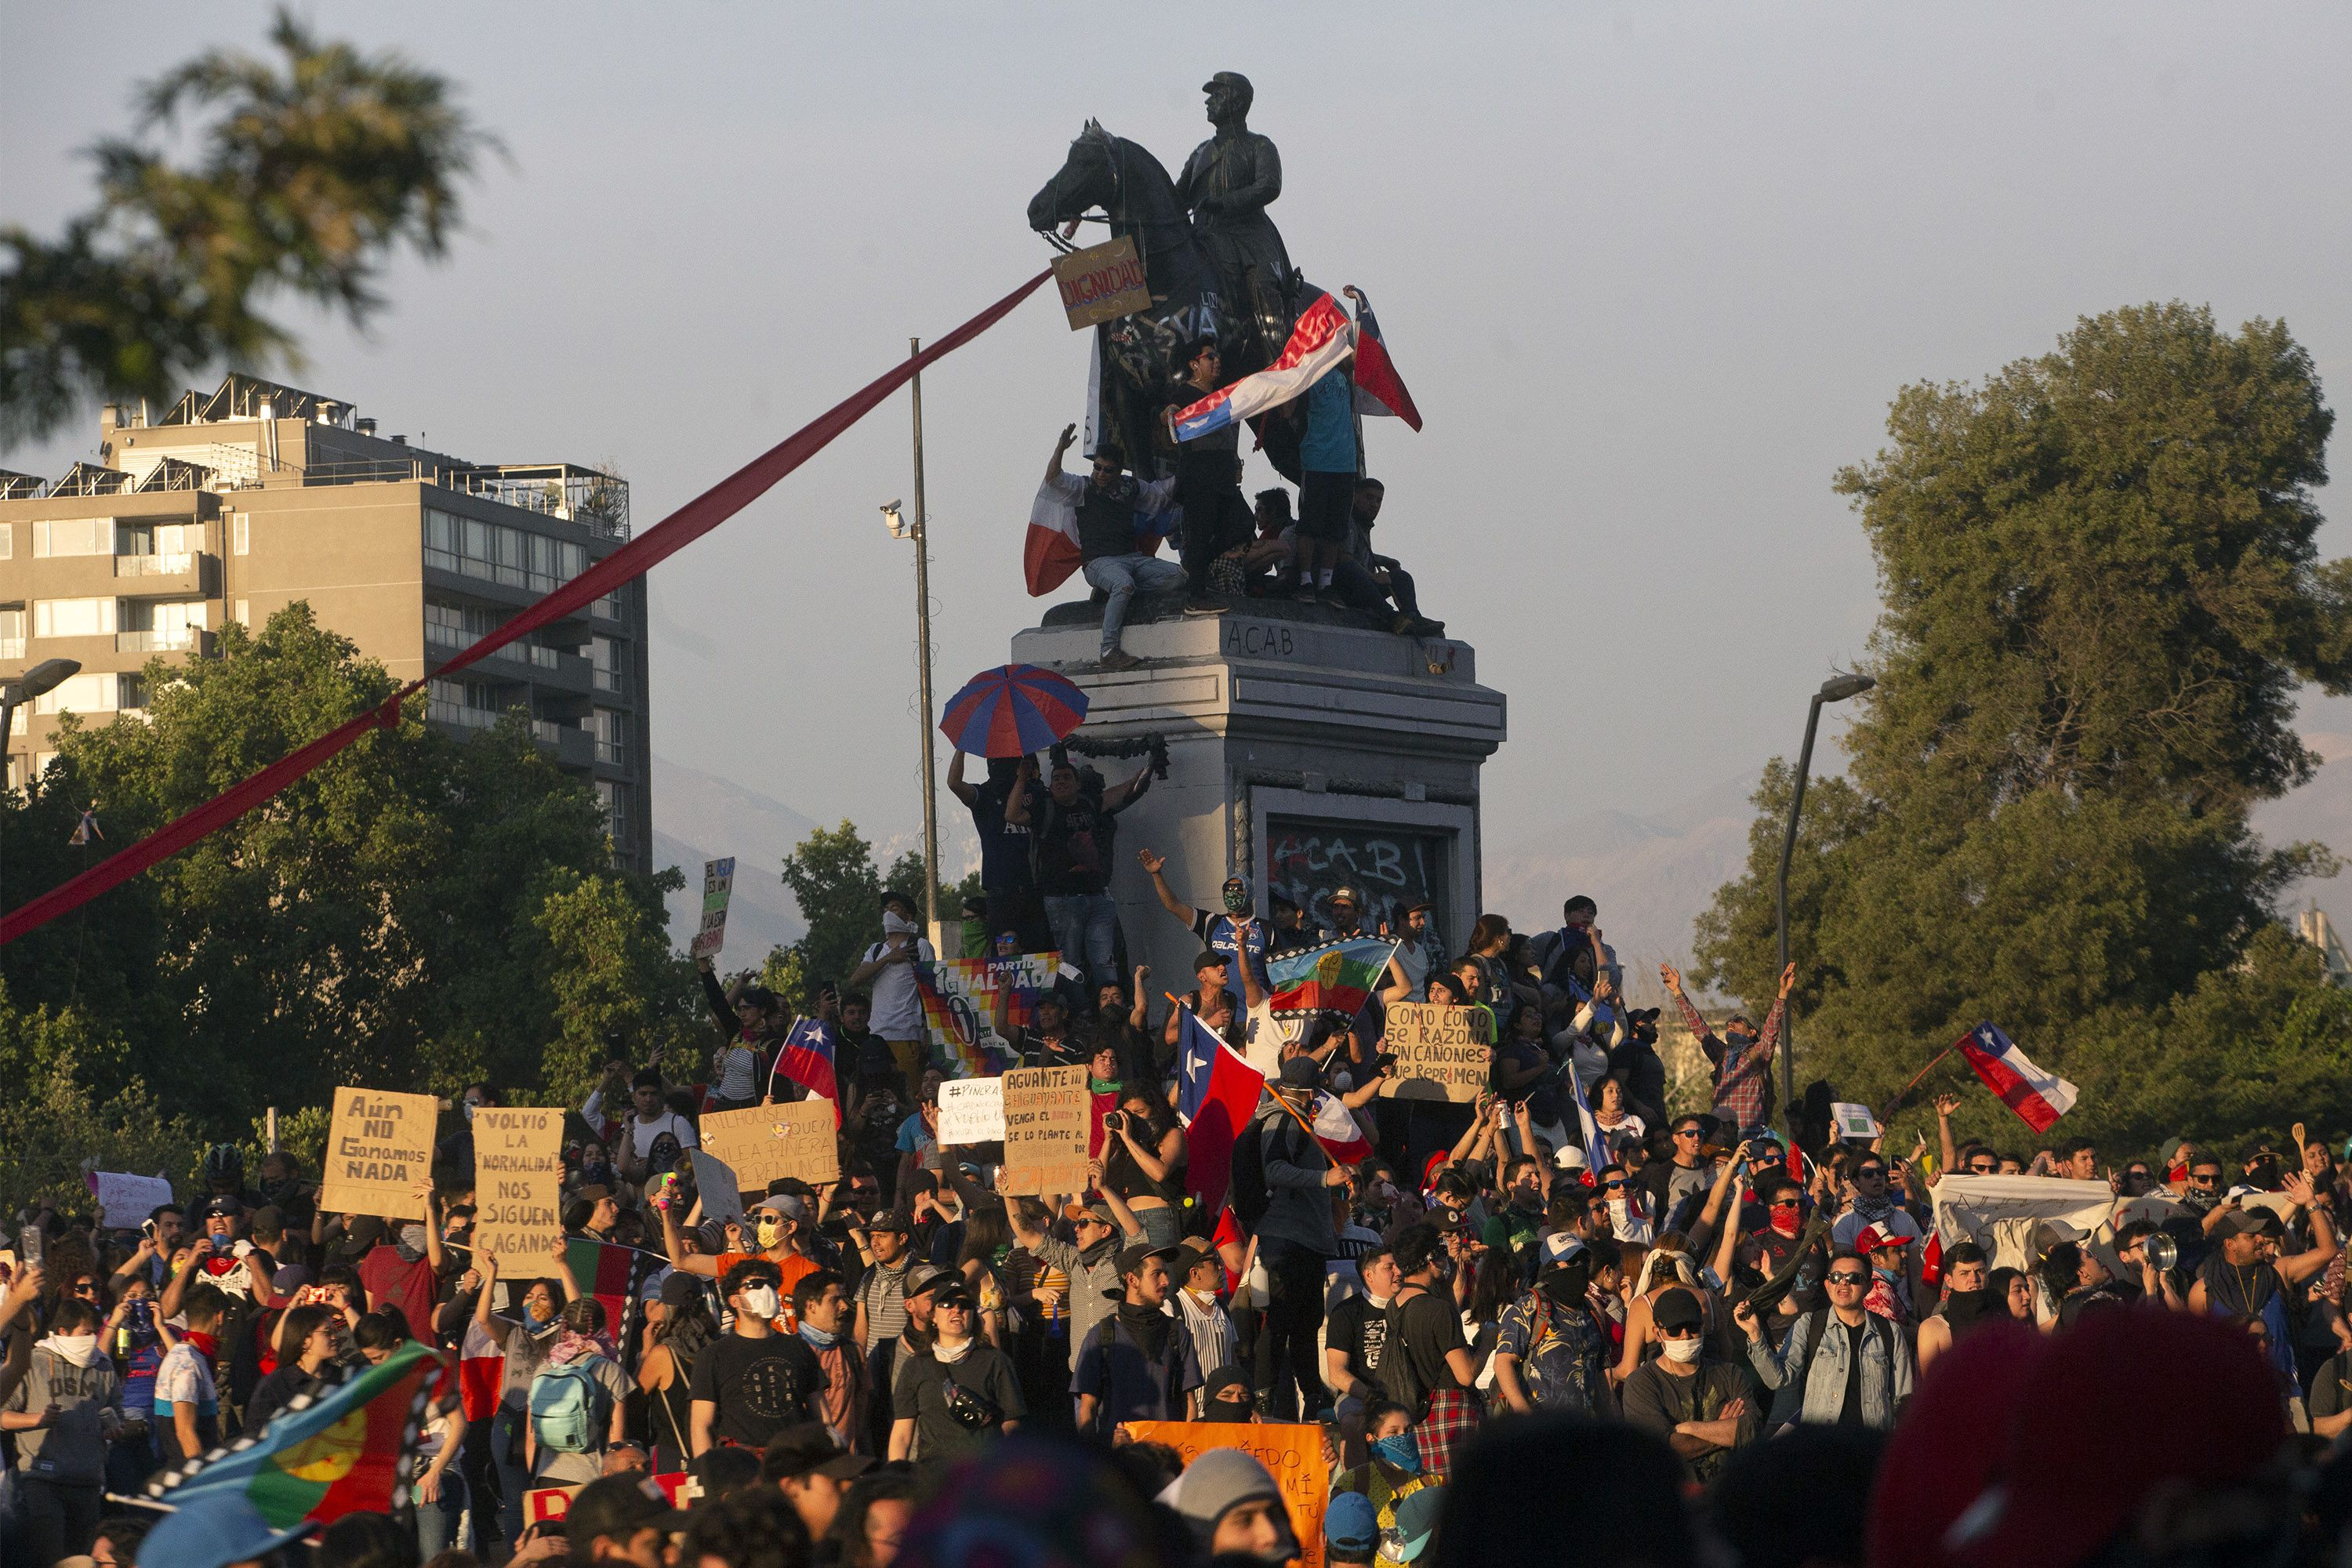 People demonstrate against the government economic policies in Santiago, on October 26, 2019, a day after more than one million people took to the streets for the largest protests in a week of demonstrations. - Chilean President Sebastian Pinera on Saturday announced a major government reshuffle and the military lifted the nighttime curfew in the Chilean capital Santiago, after a week of deadly demonstrations demanding economic reforms and Pinera's resignation. (Photo by CLAUDIO REYES / AFP)